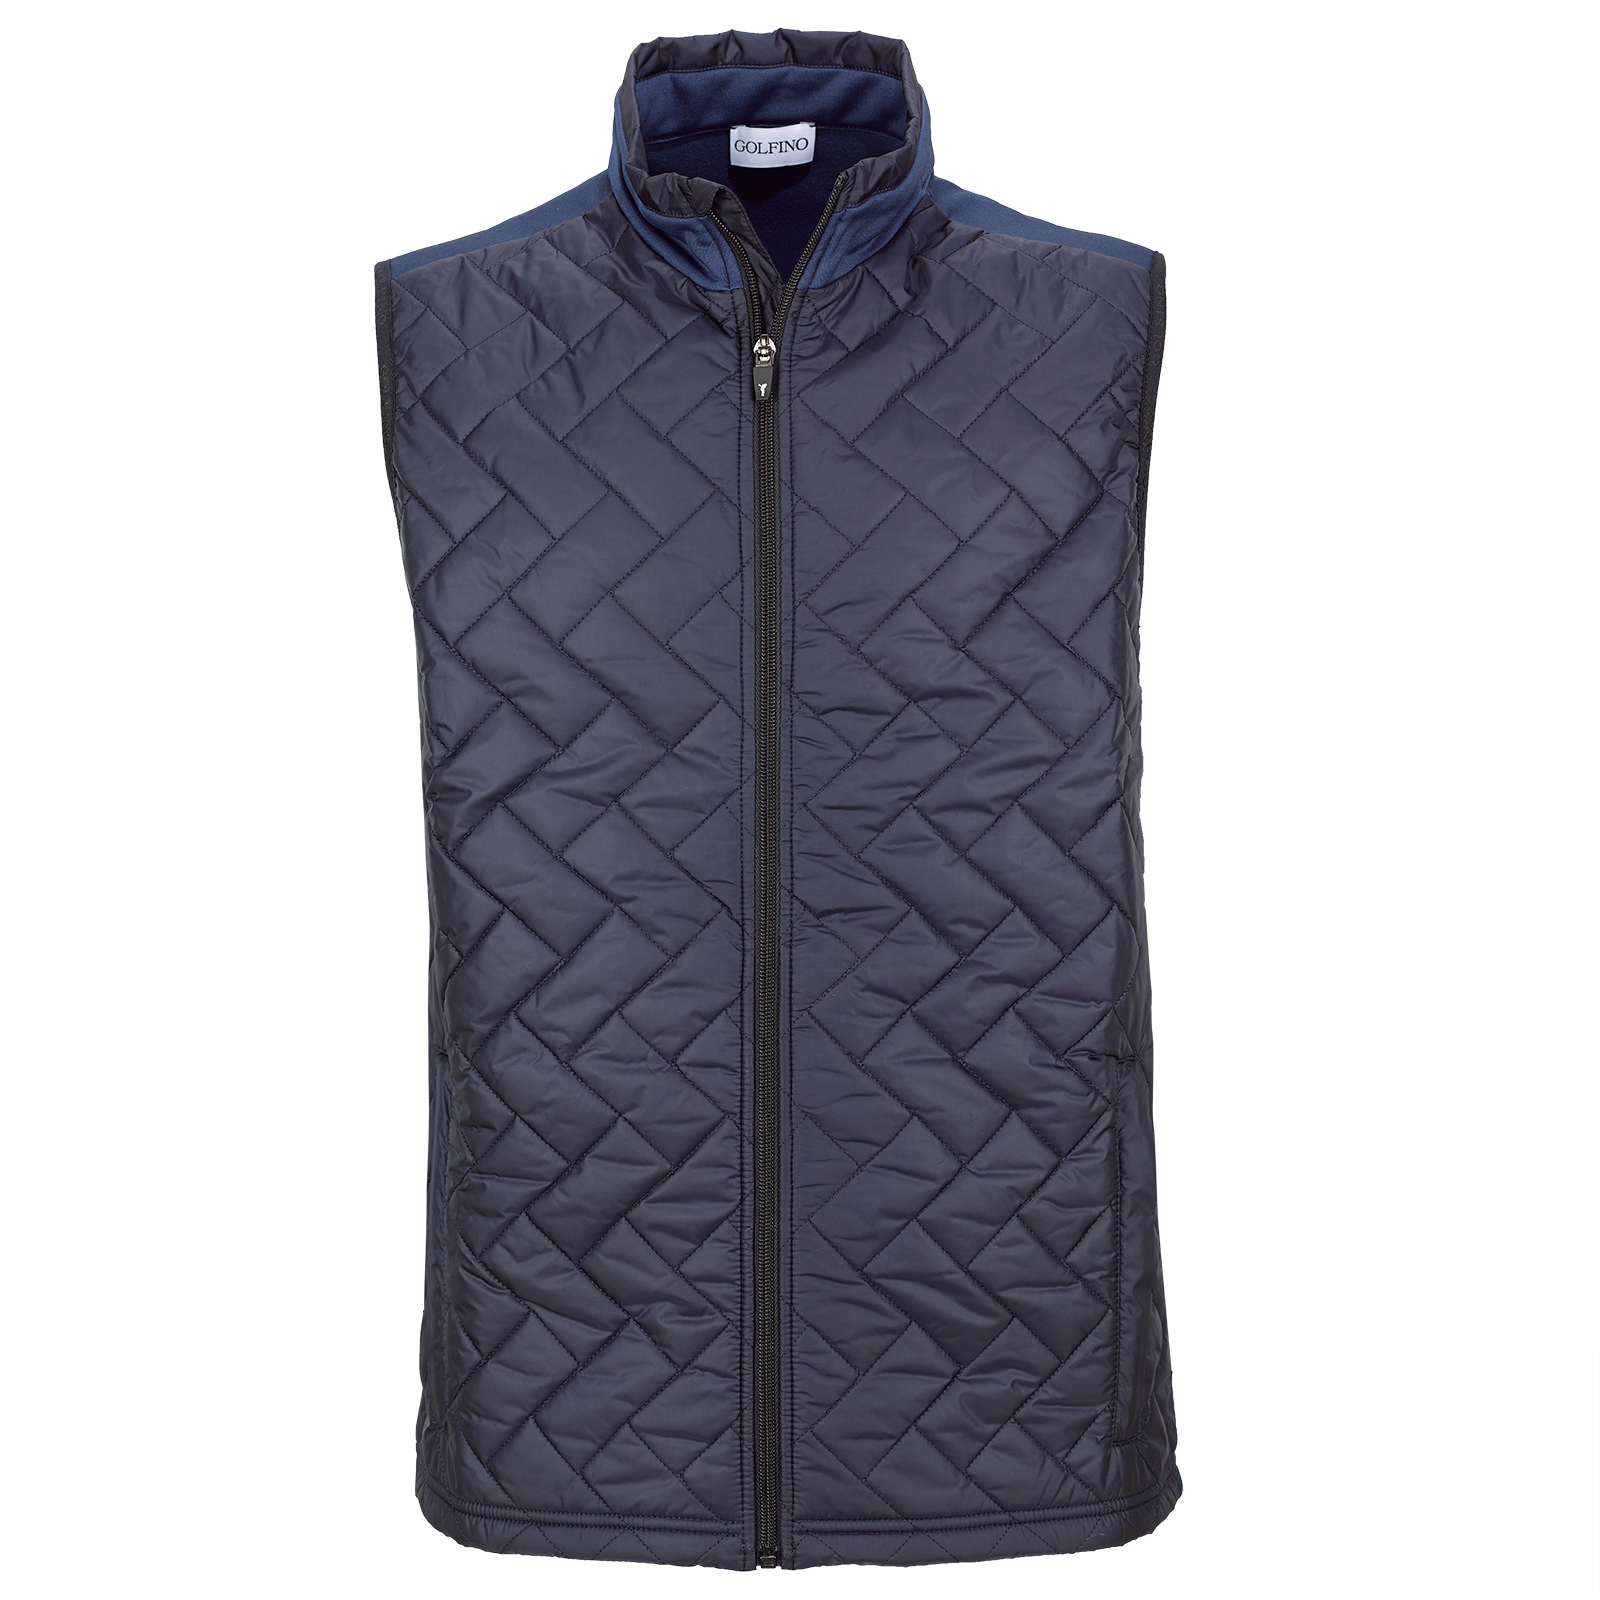 Men's Wind Protection golf vest